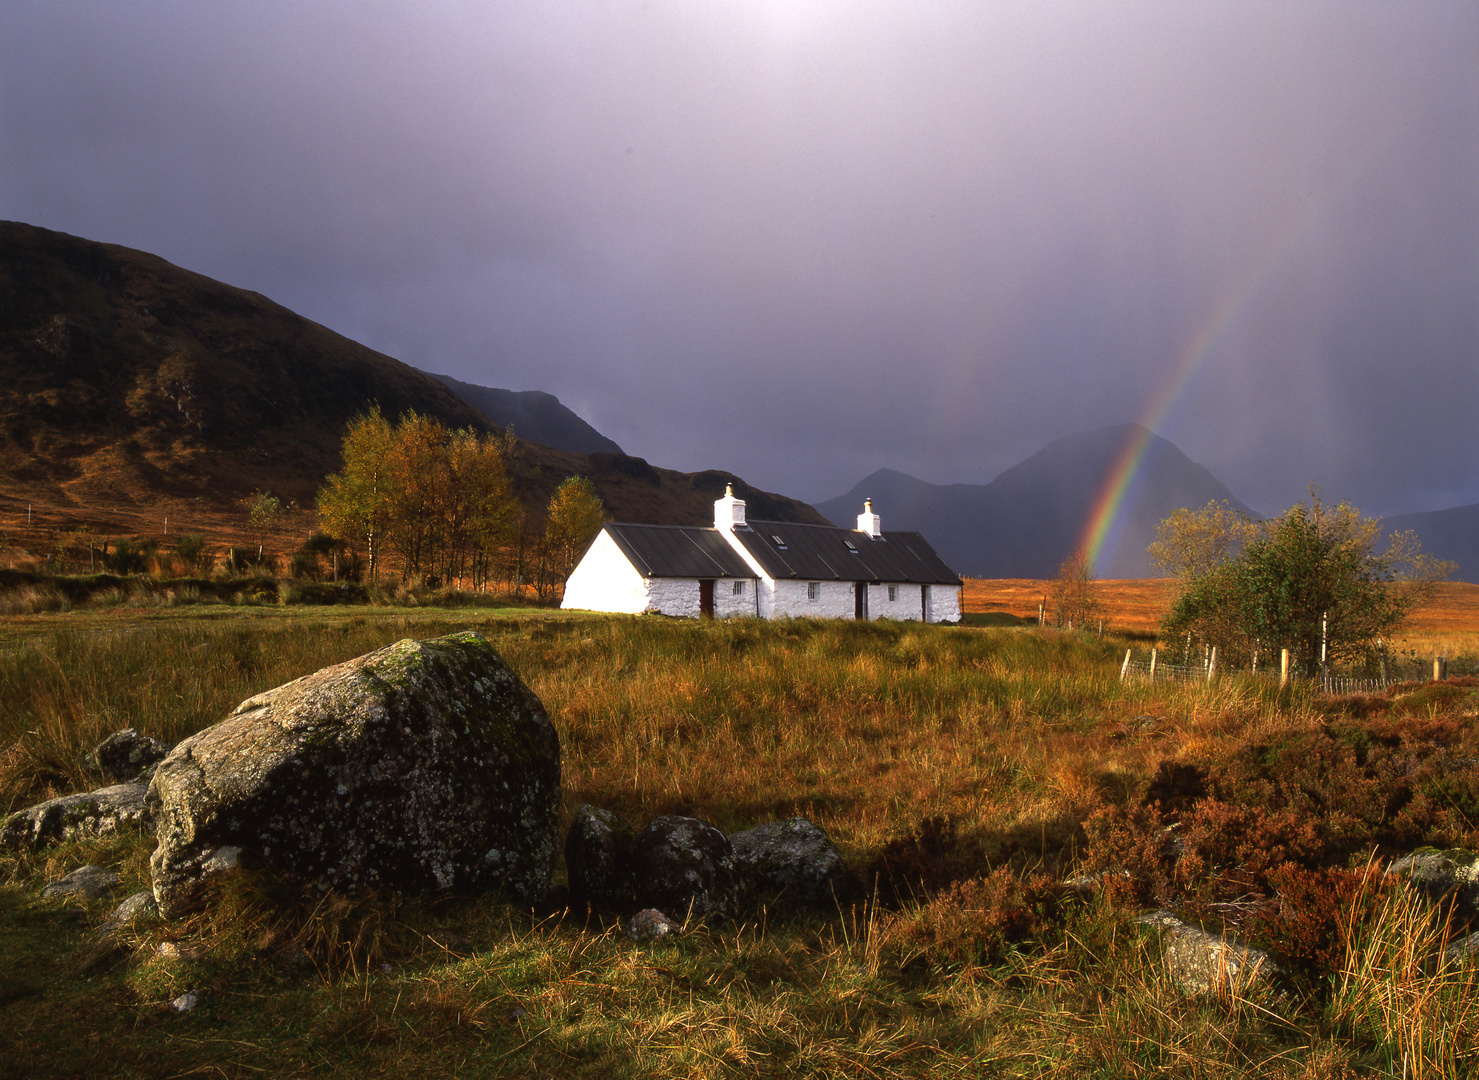 Glen_Nevis_Cottage_Rainbow_-_Flim_6_-_RVP_-_645nII